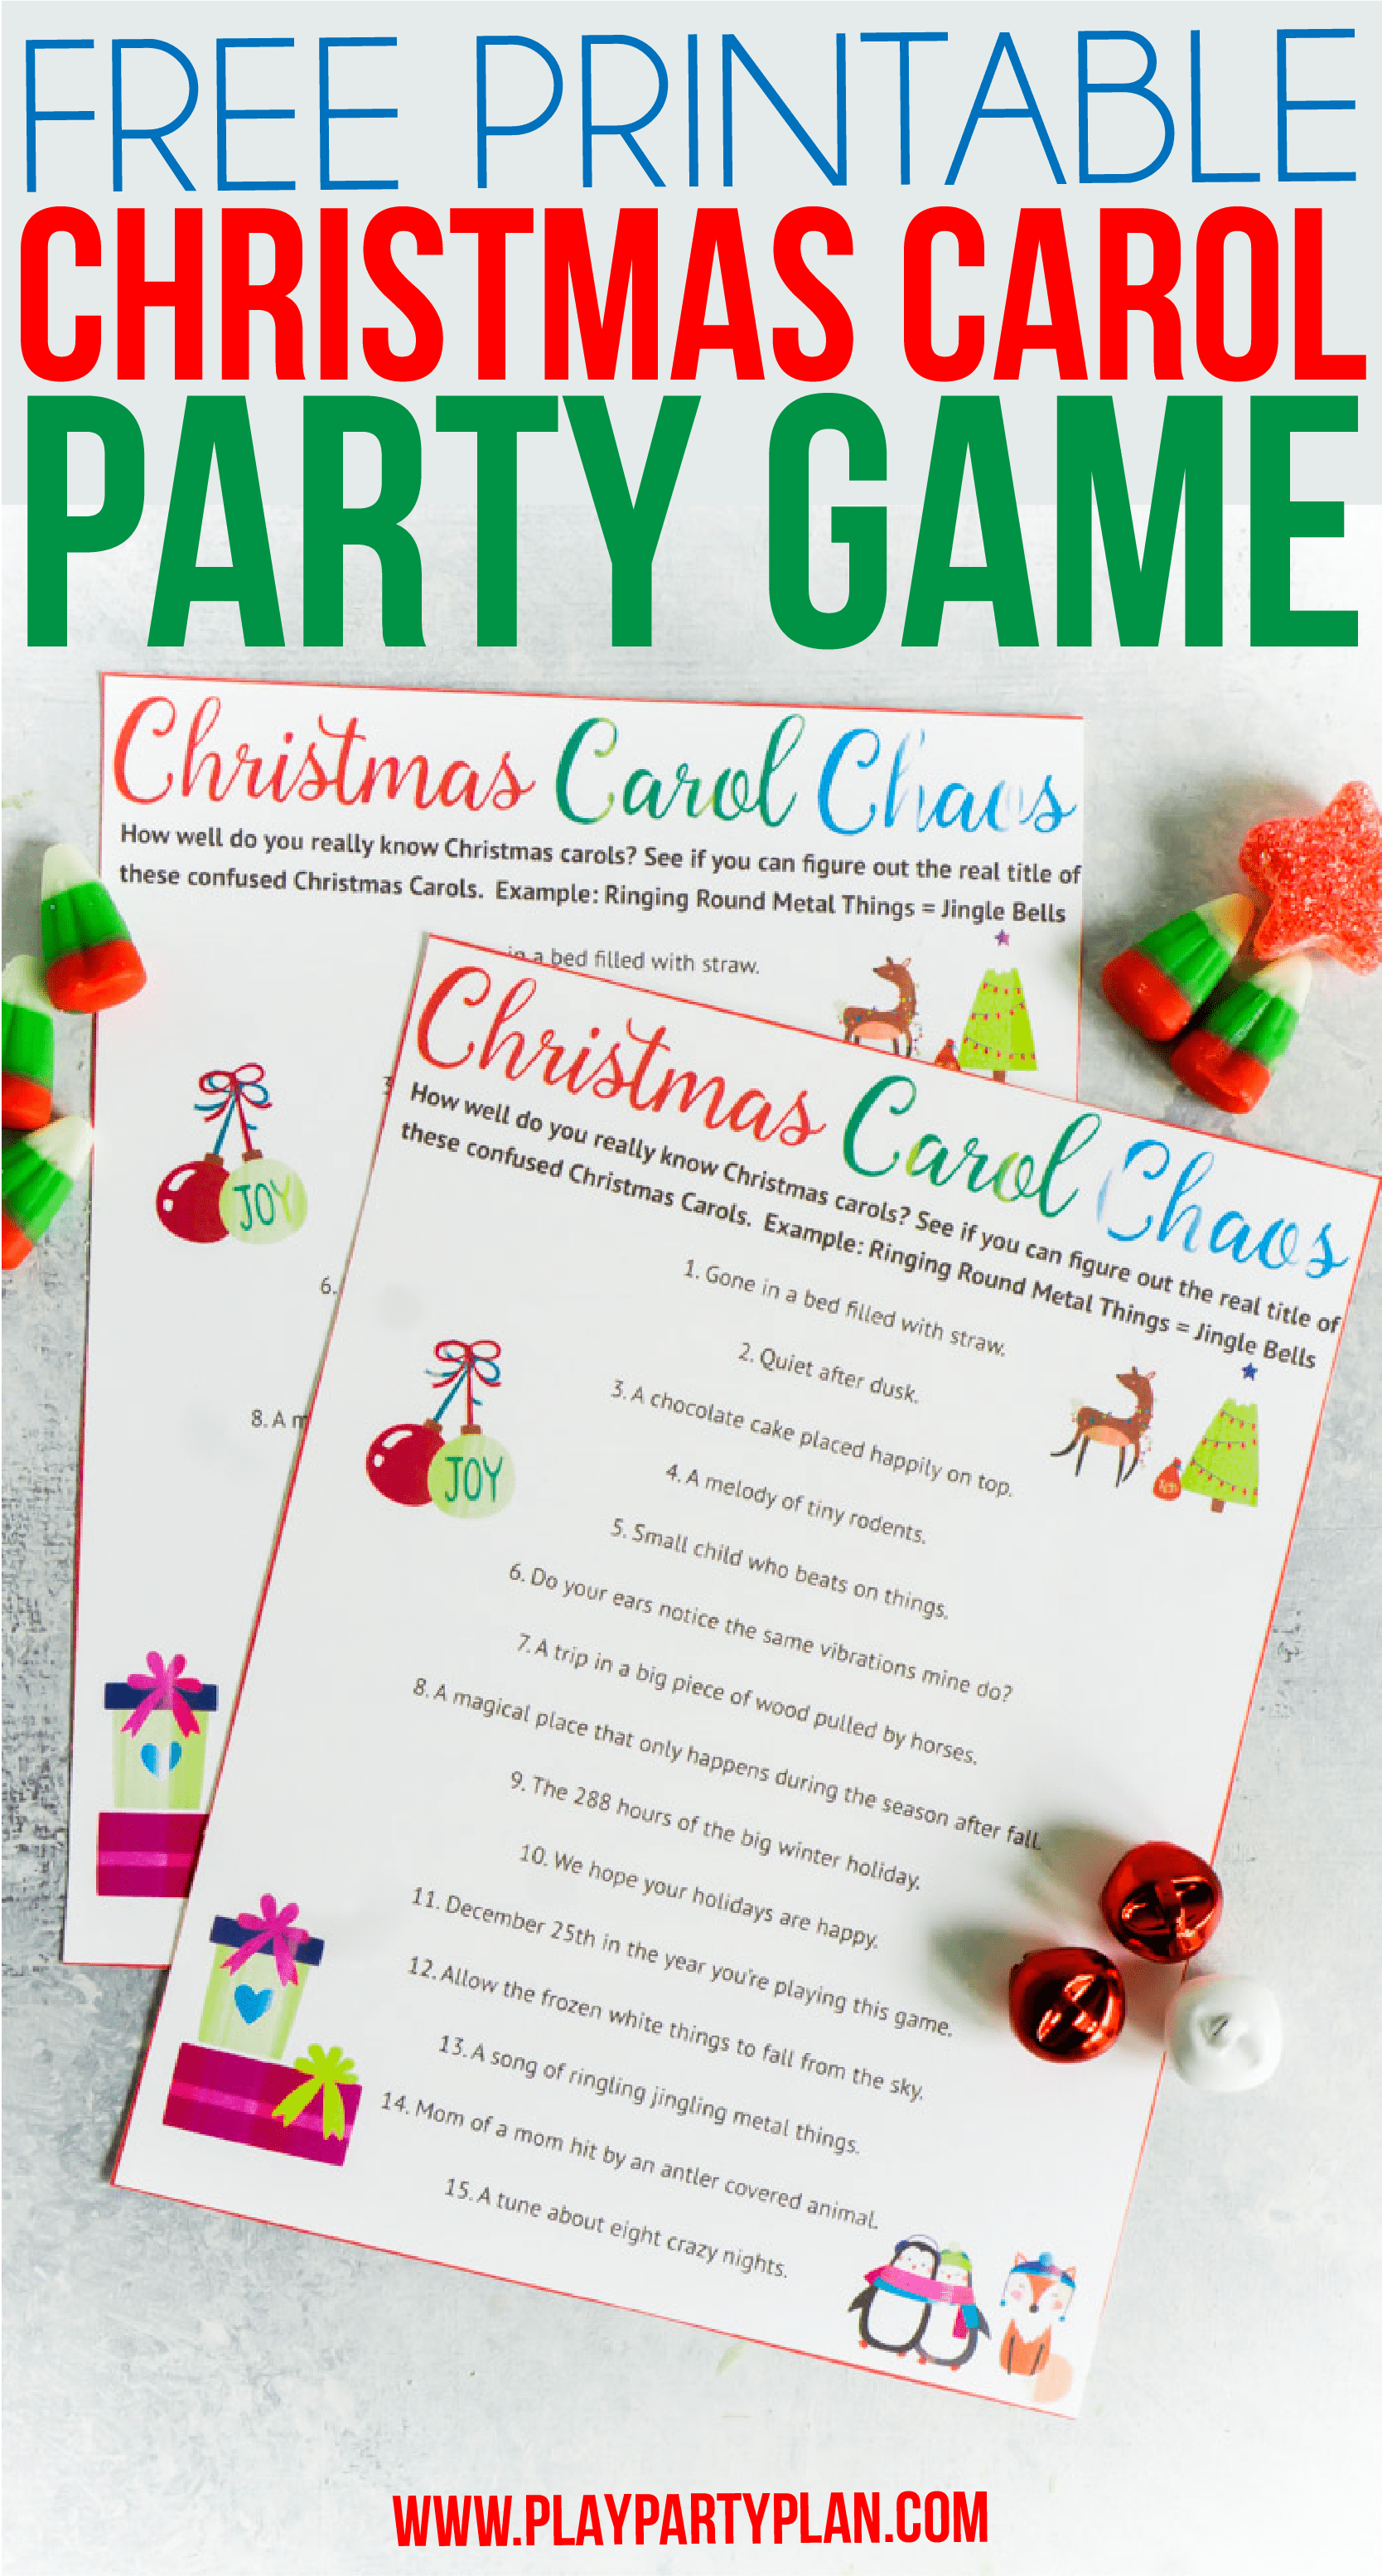 7 Must Reads Tips For Hosting The Best Christmas Party Ever